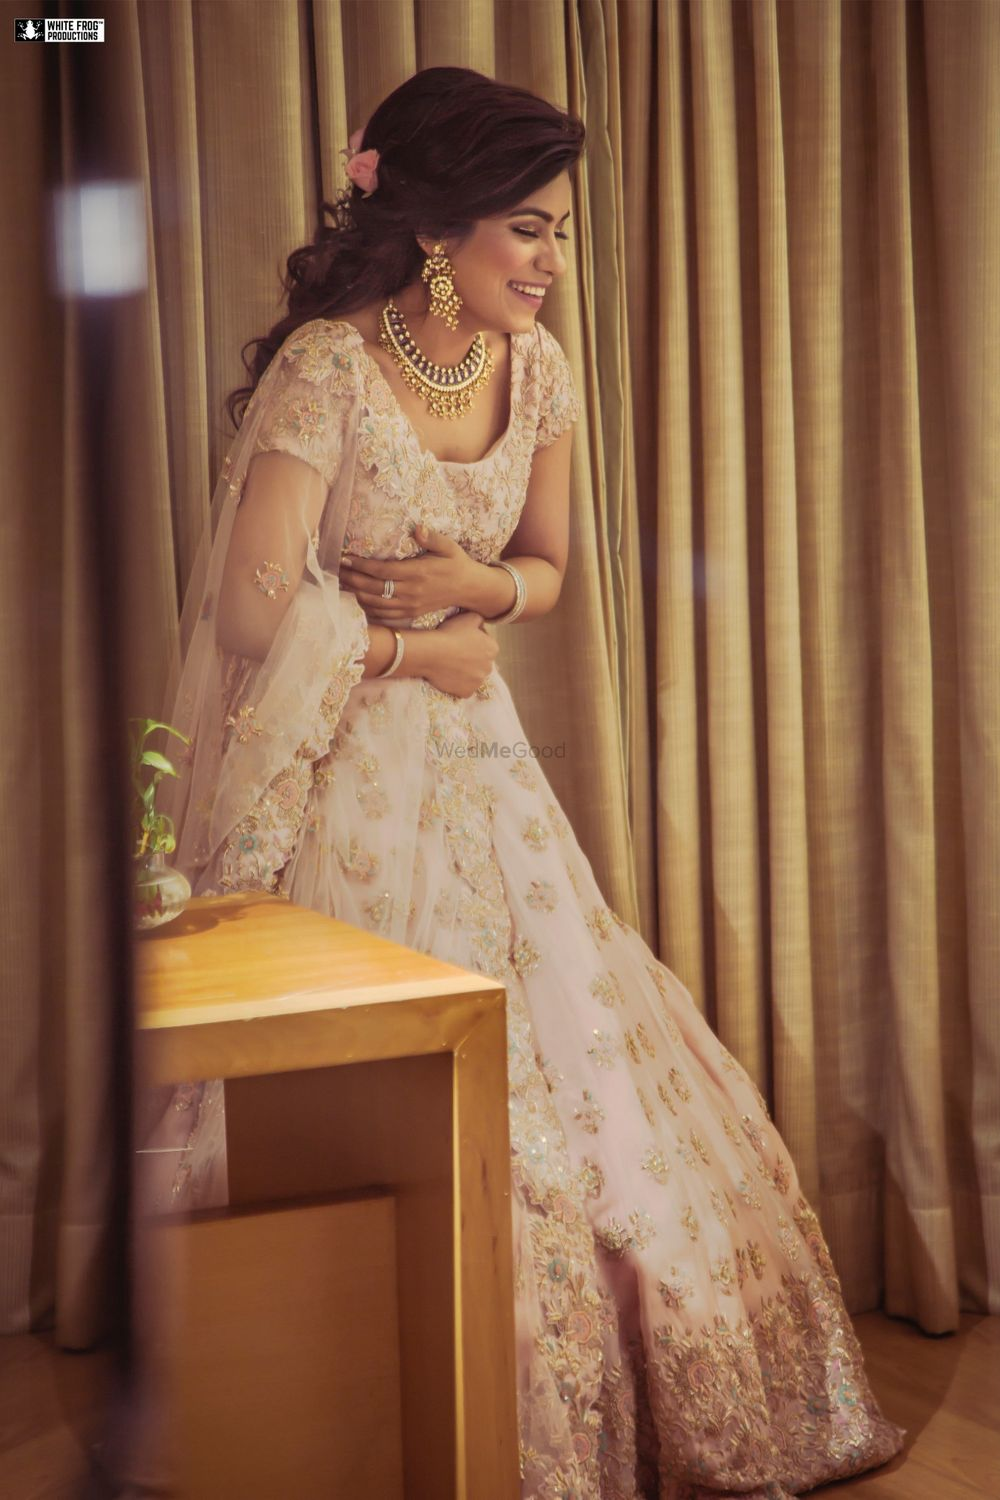 Photo of Candid pretty bridal portrait